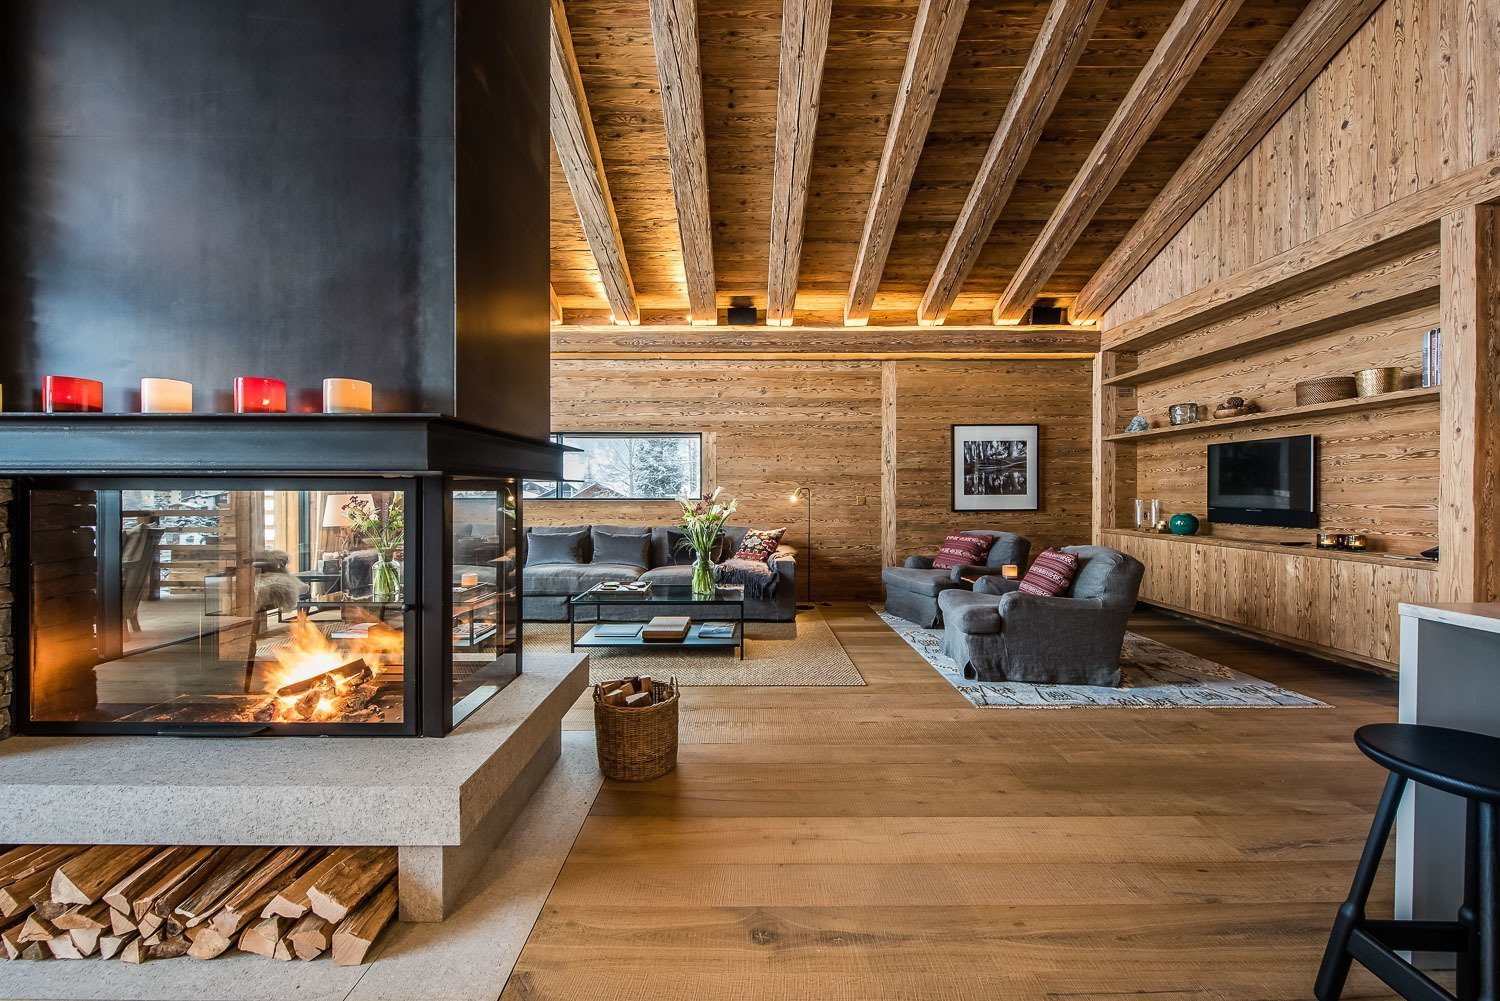 Living, Wood Burning, Sofa, Medium Hardwood, Accent, Lamps, Floor, Rug, Shelves, Chair, Coffee Tables, and Two-Sided A contemporary glass-encased fireplace in this Zermatt villa acts as a partition that divides the living lounge from the dining area.  Best Living Shelves Accent Photos from 10 Modern Fireplaces That Make For Inviting Interiors